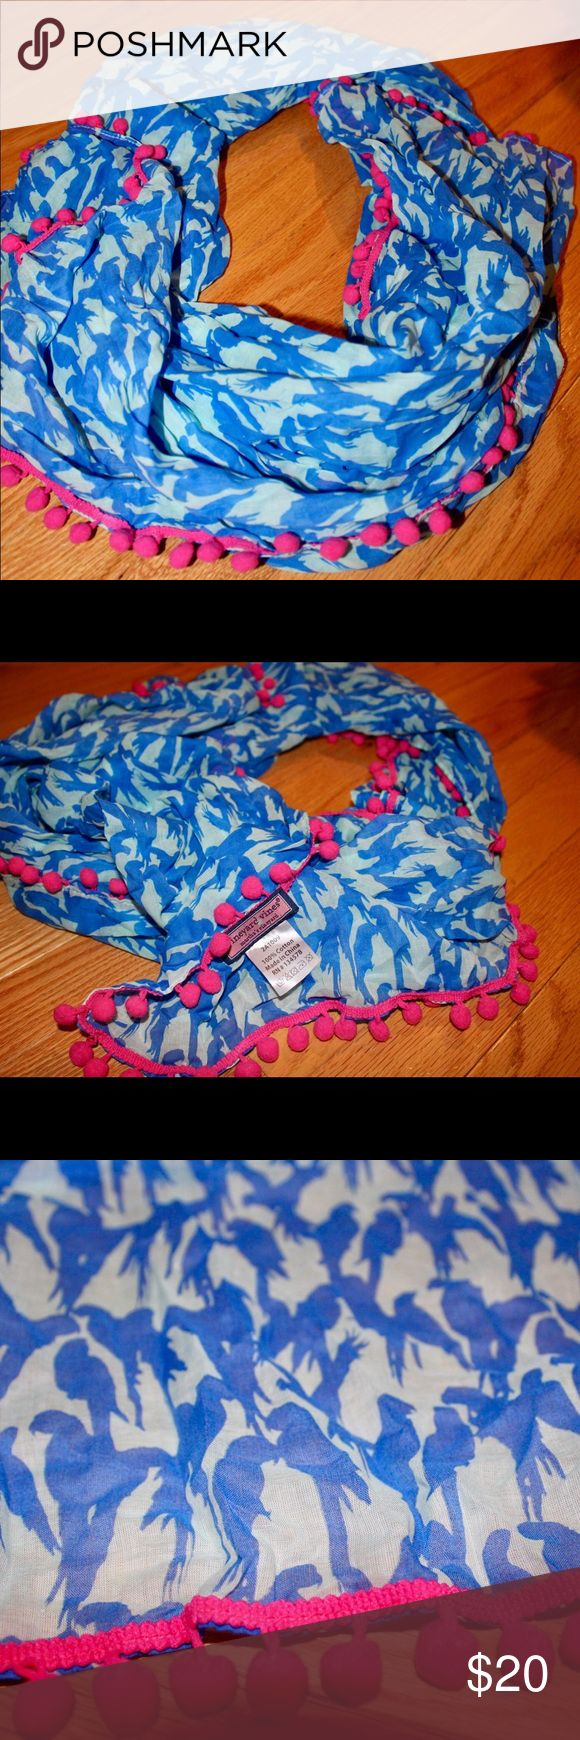 Vineyard Vines scarf Beautiful, light weight blue and white scarf with pink embellishments and a parrot design. Brand new! Make me an offer 😊 Vineyard Vines Accessories Scarves & Wraps